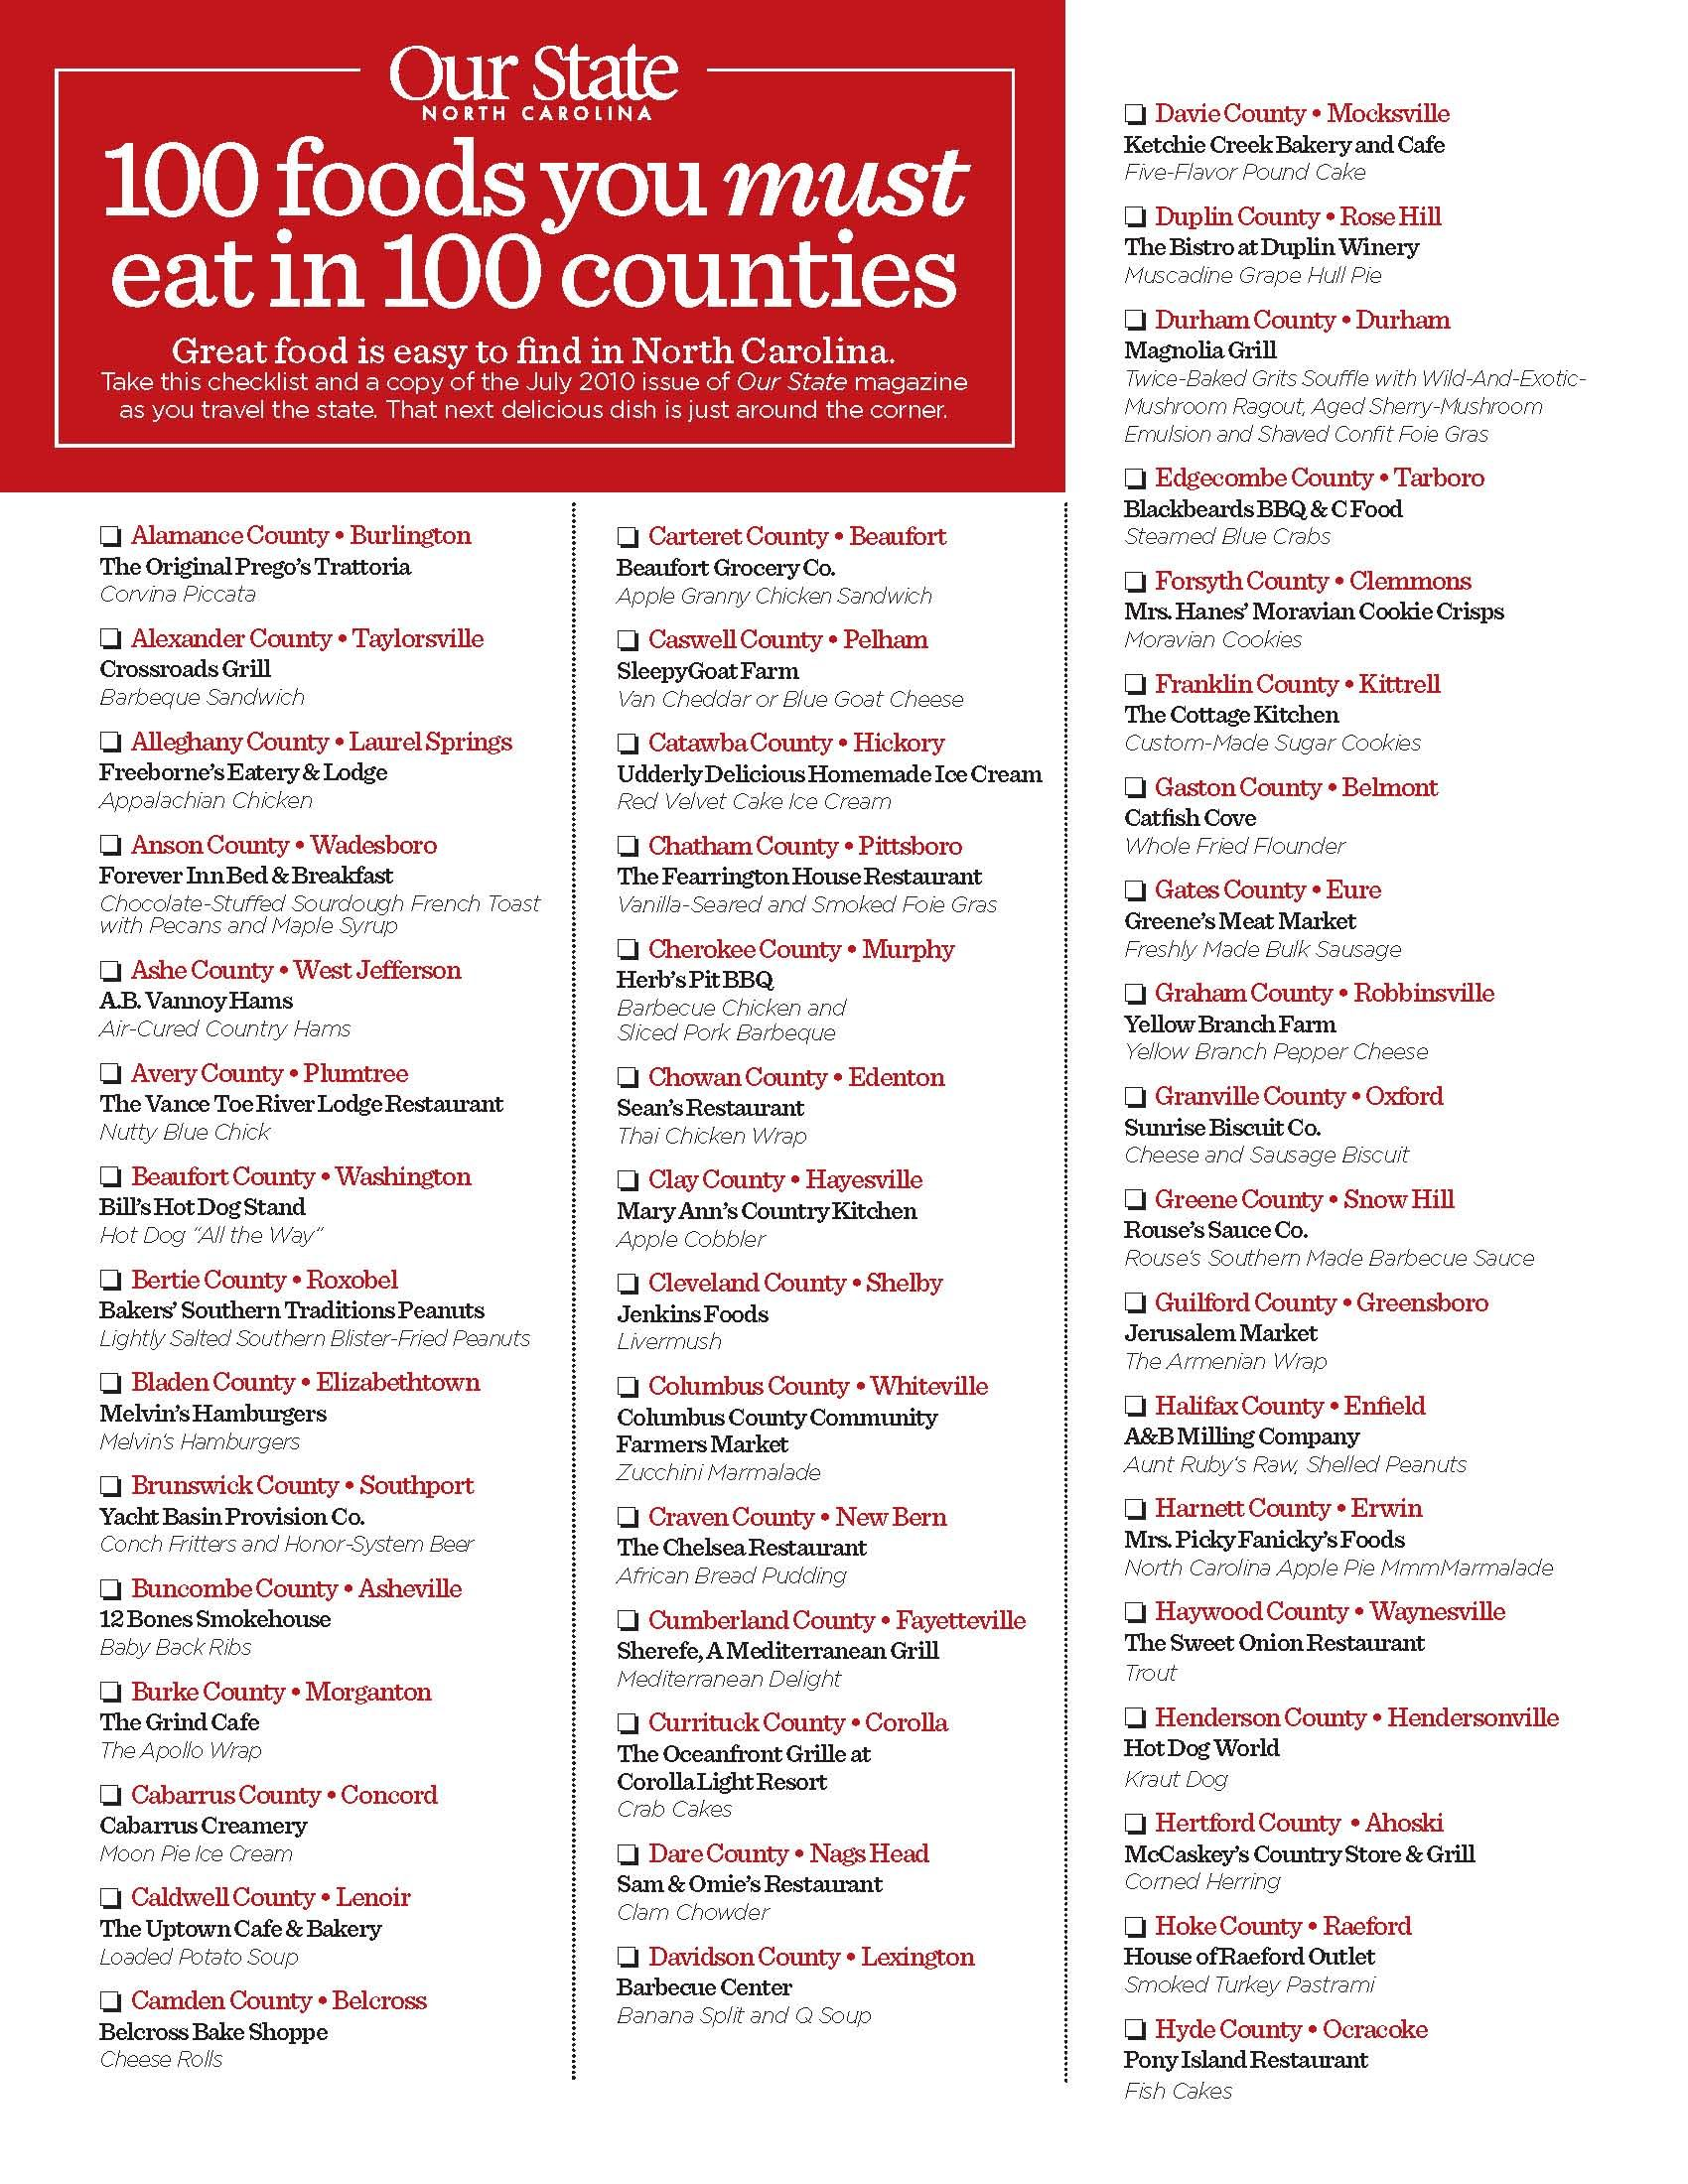 100 Foods You Must Eat in 100 Counties | Magazines, Food and North ...